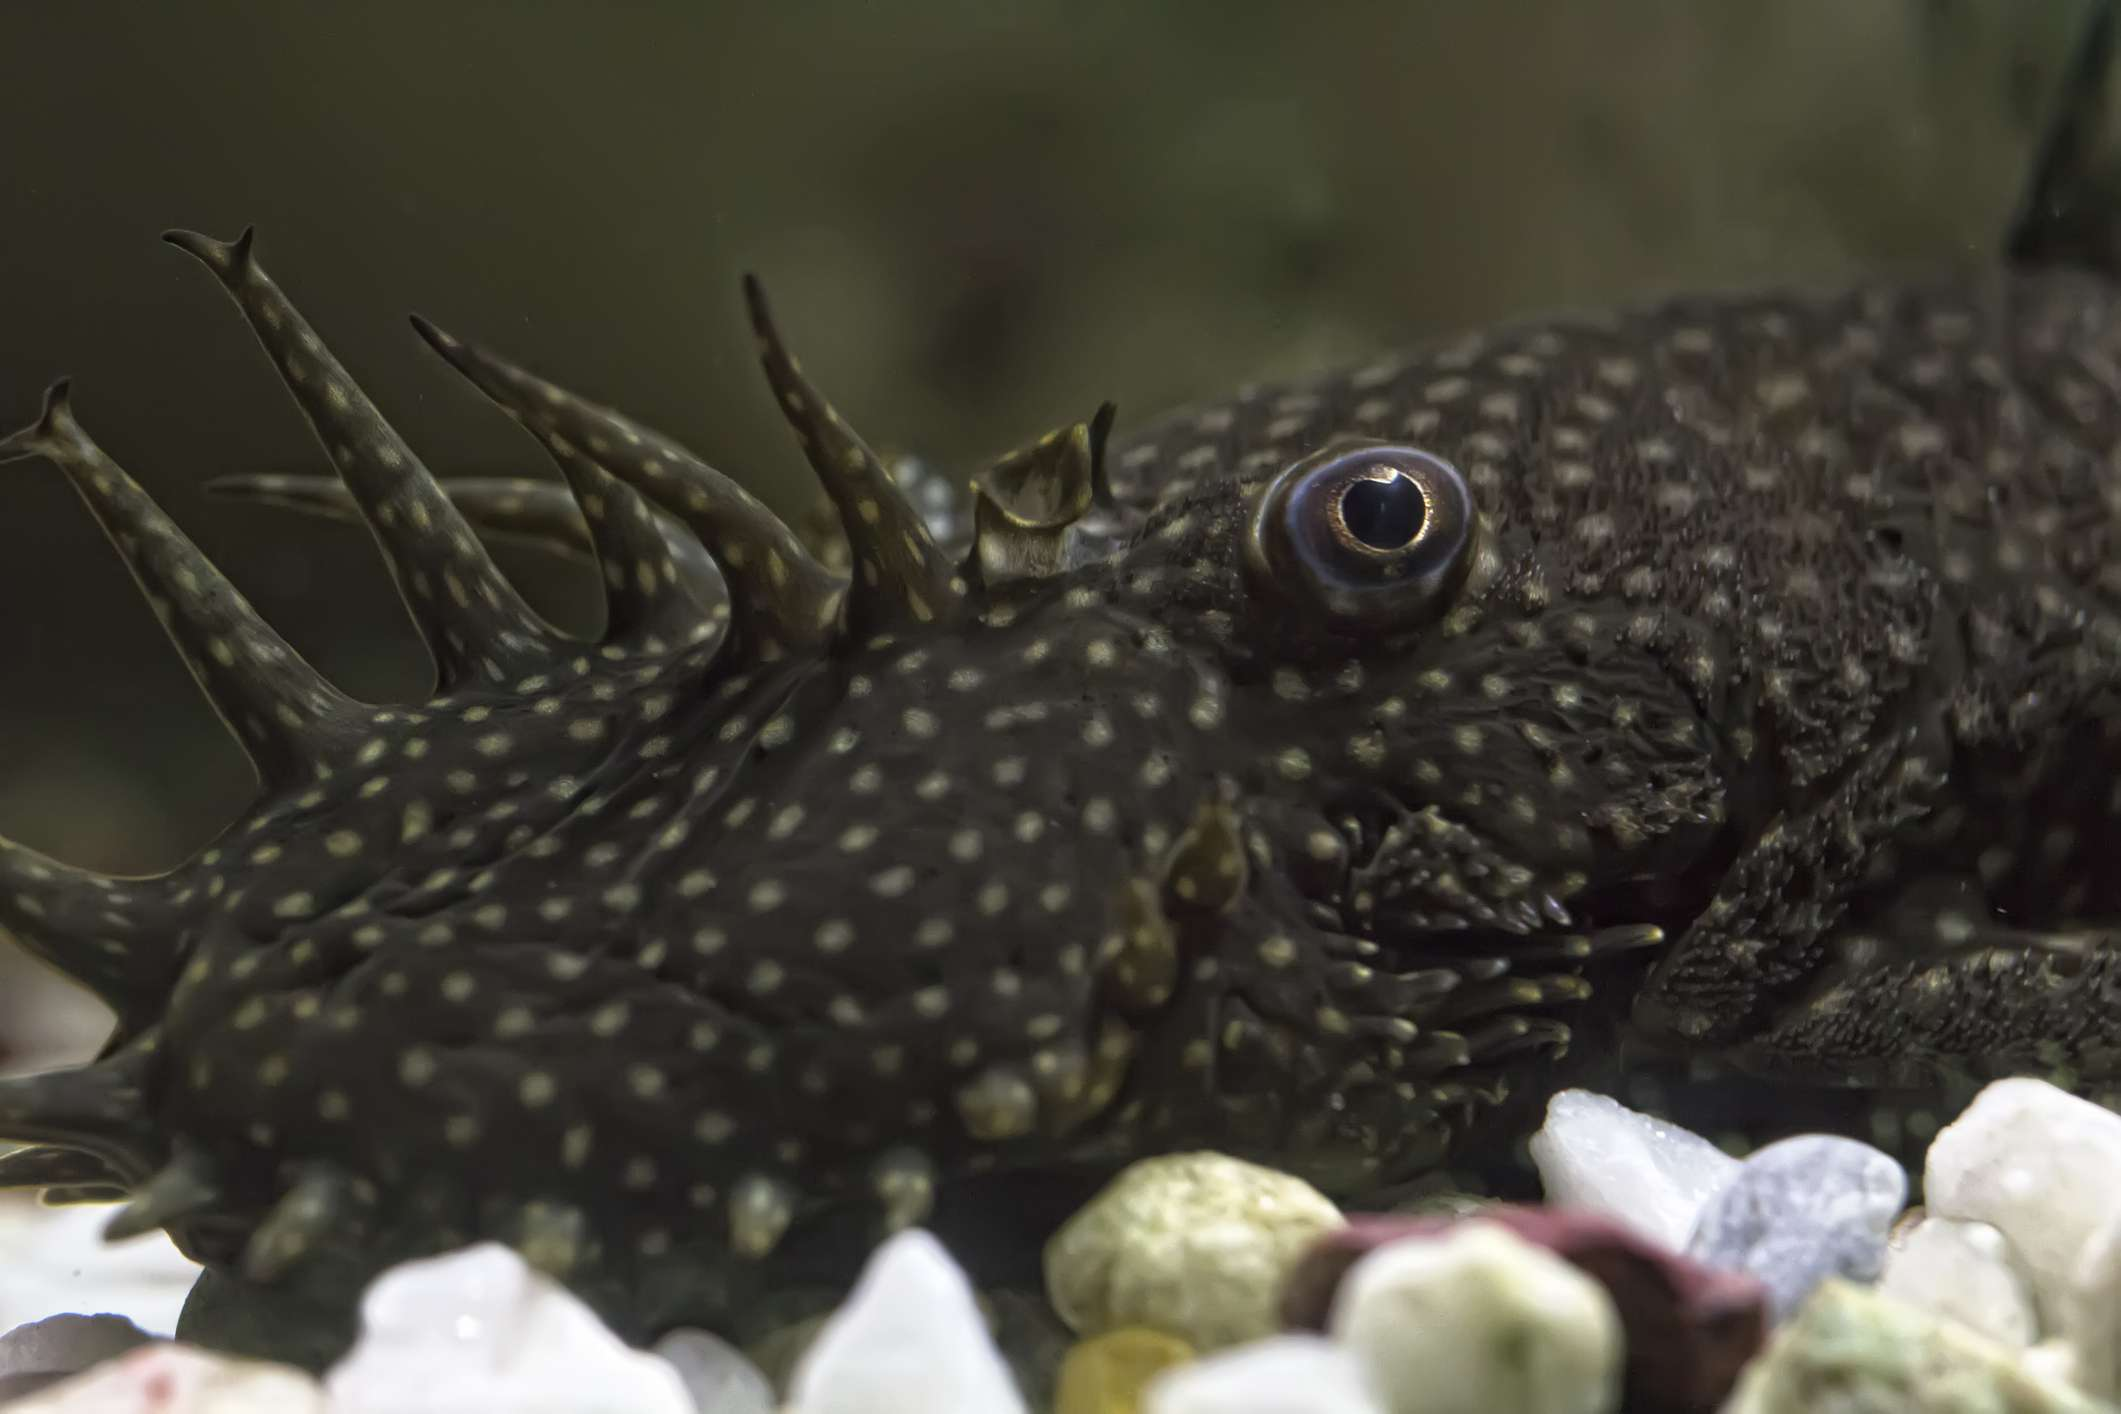 A close-up view of a bristlenose catfish's head.